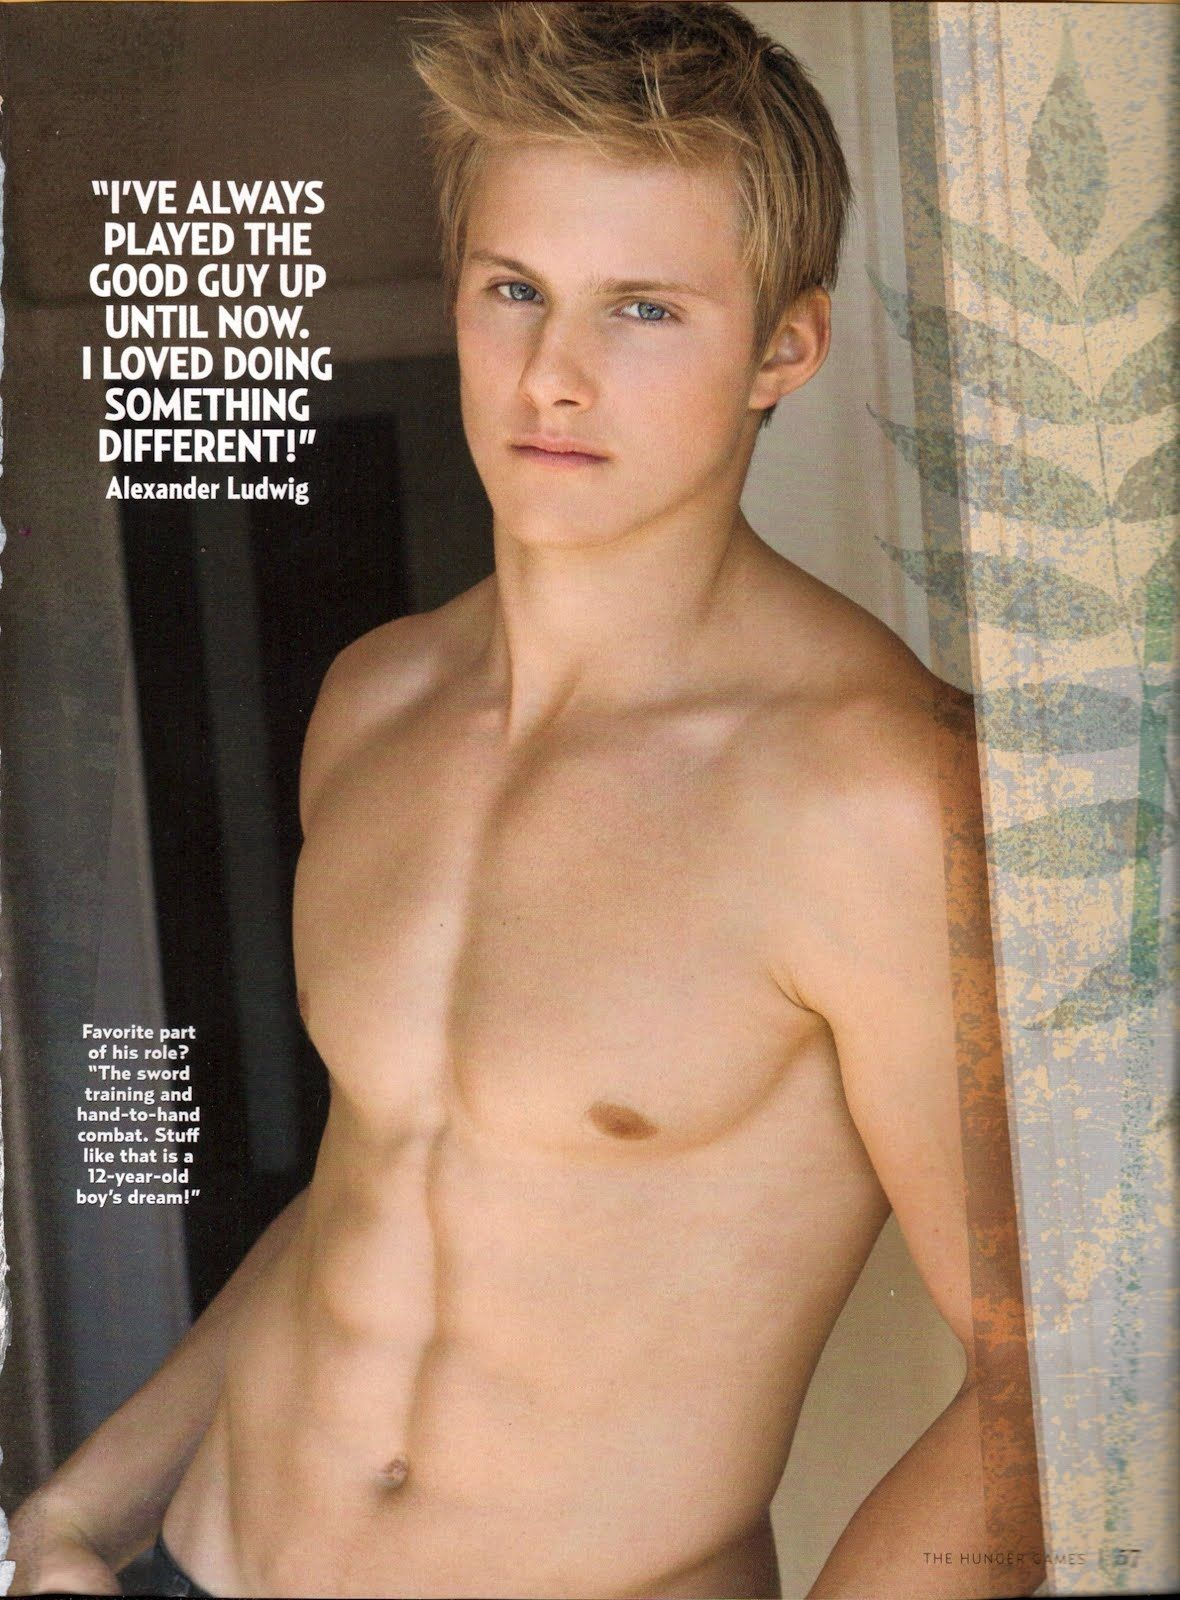 naked Alexander Ludwing 1000+ images about Alexander ludwig on Pinterest | Alexander ludwig, The hunger game and Catching fire